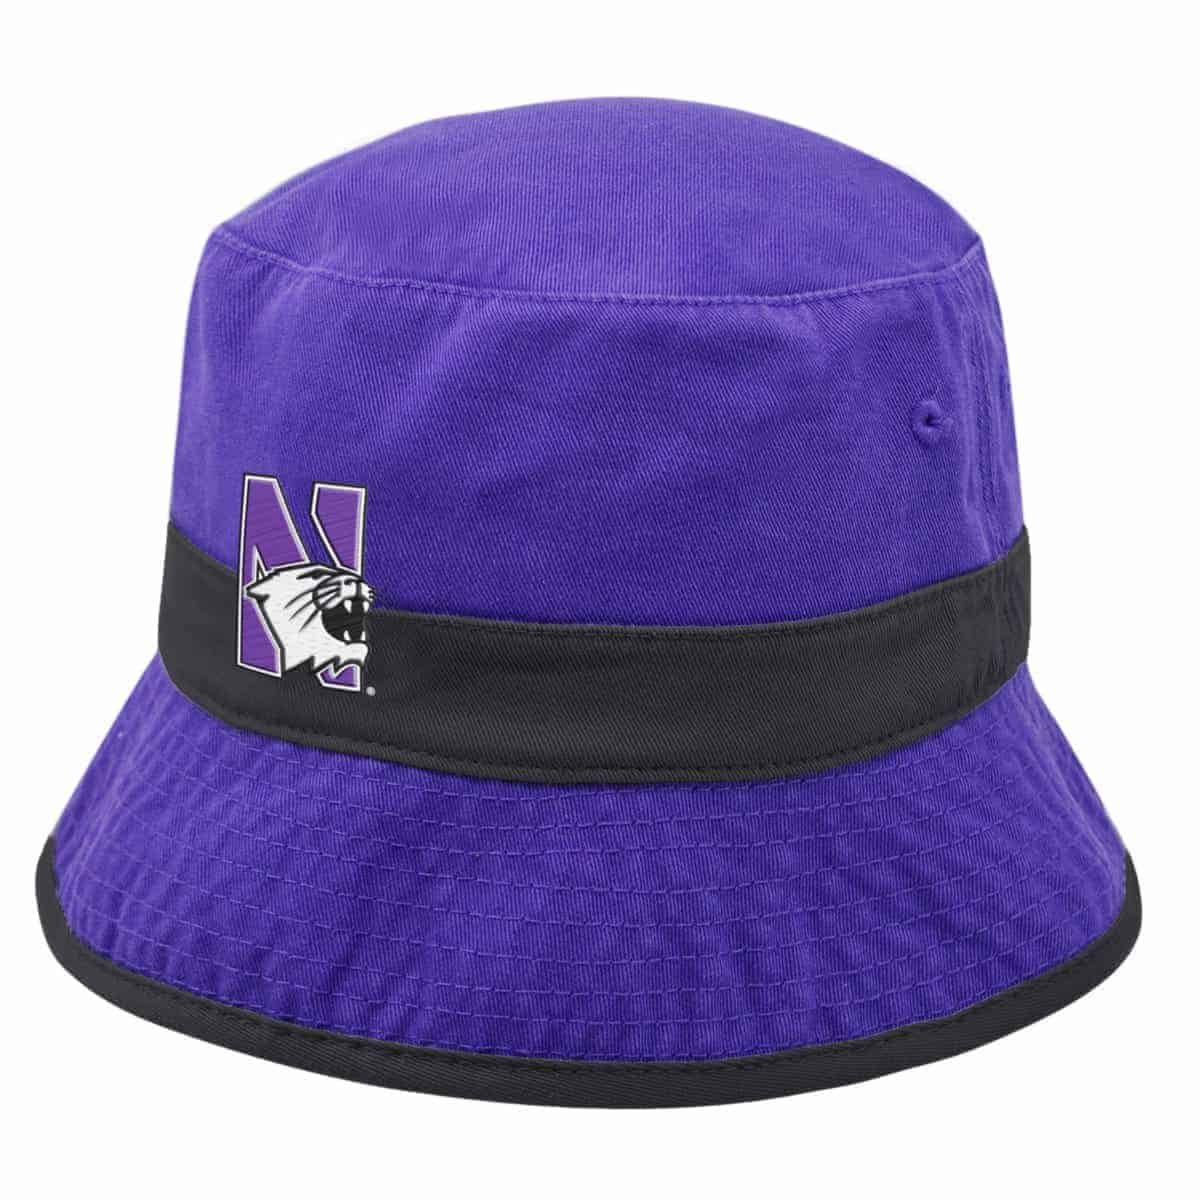 de75c1ea11c0a Northwestern Wildcats Purple Floppy Bucket Hat with N-Cat Design